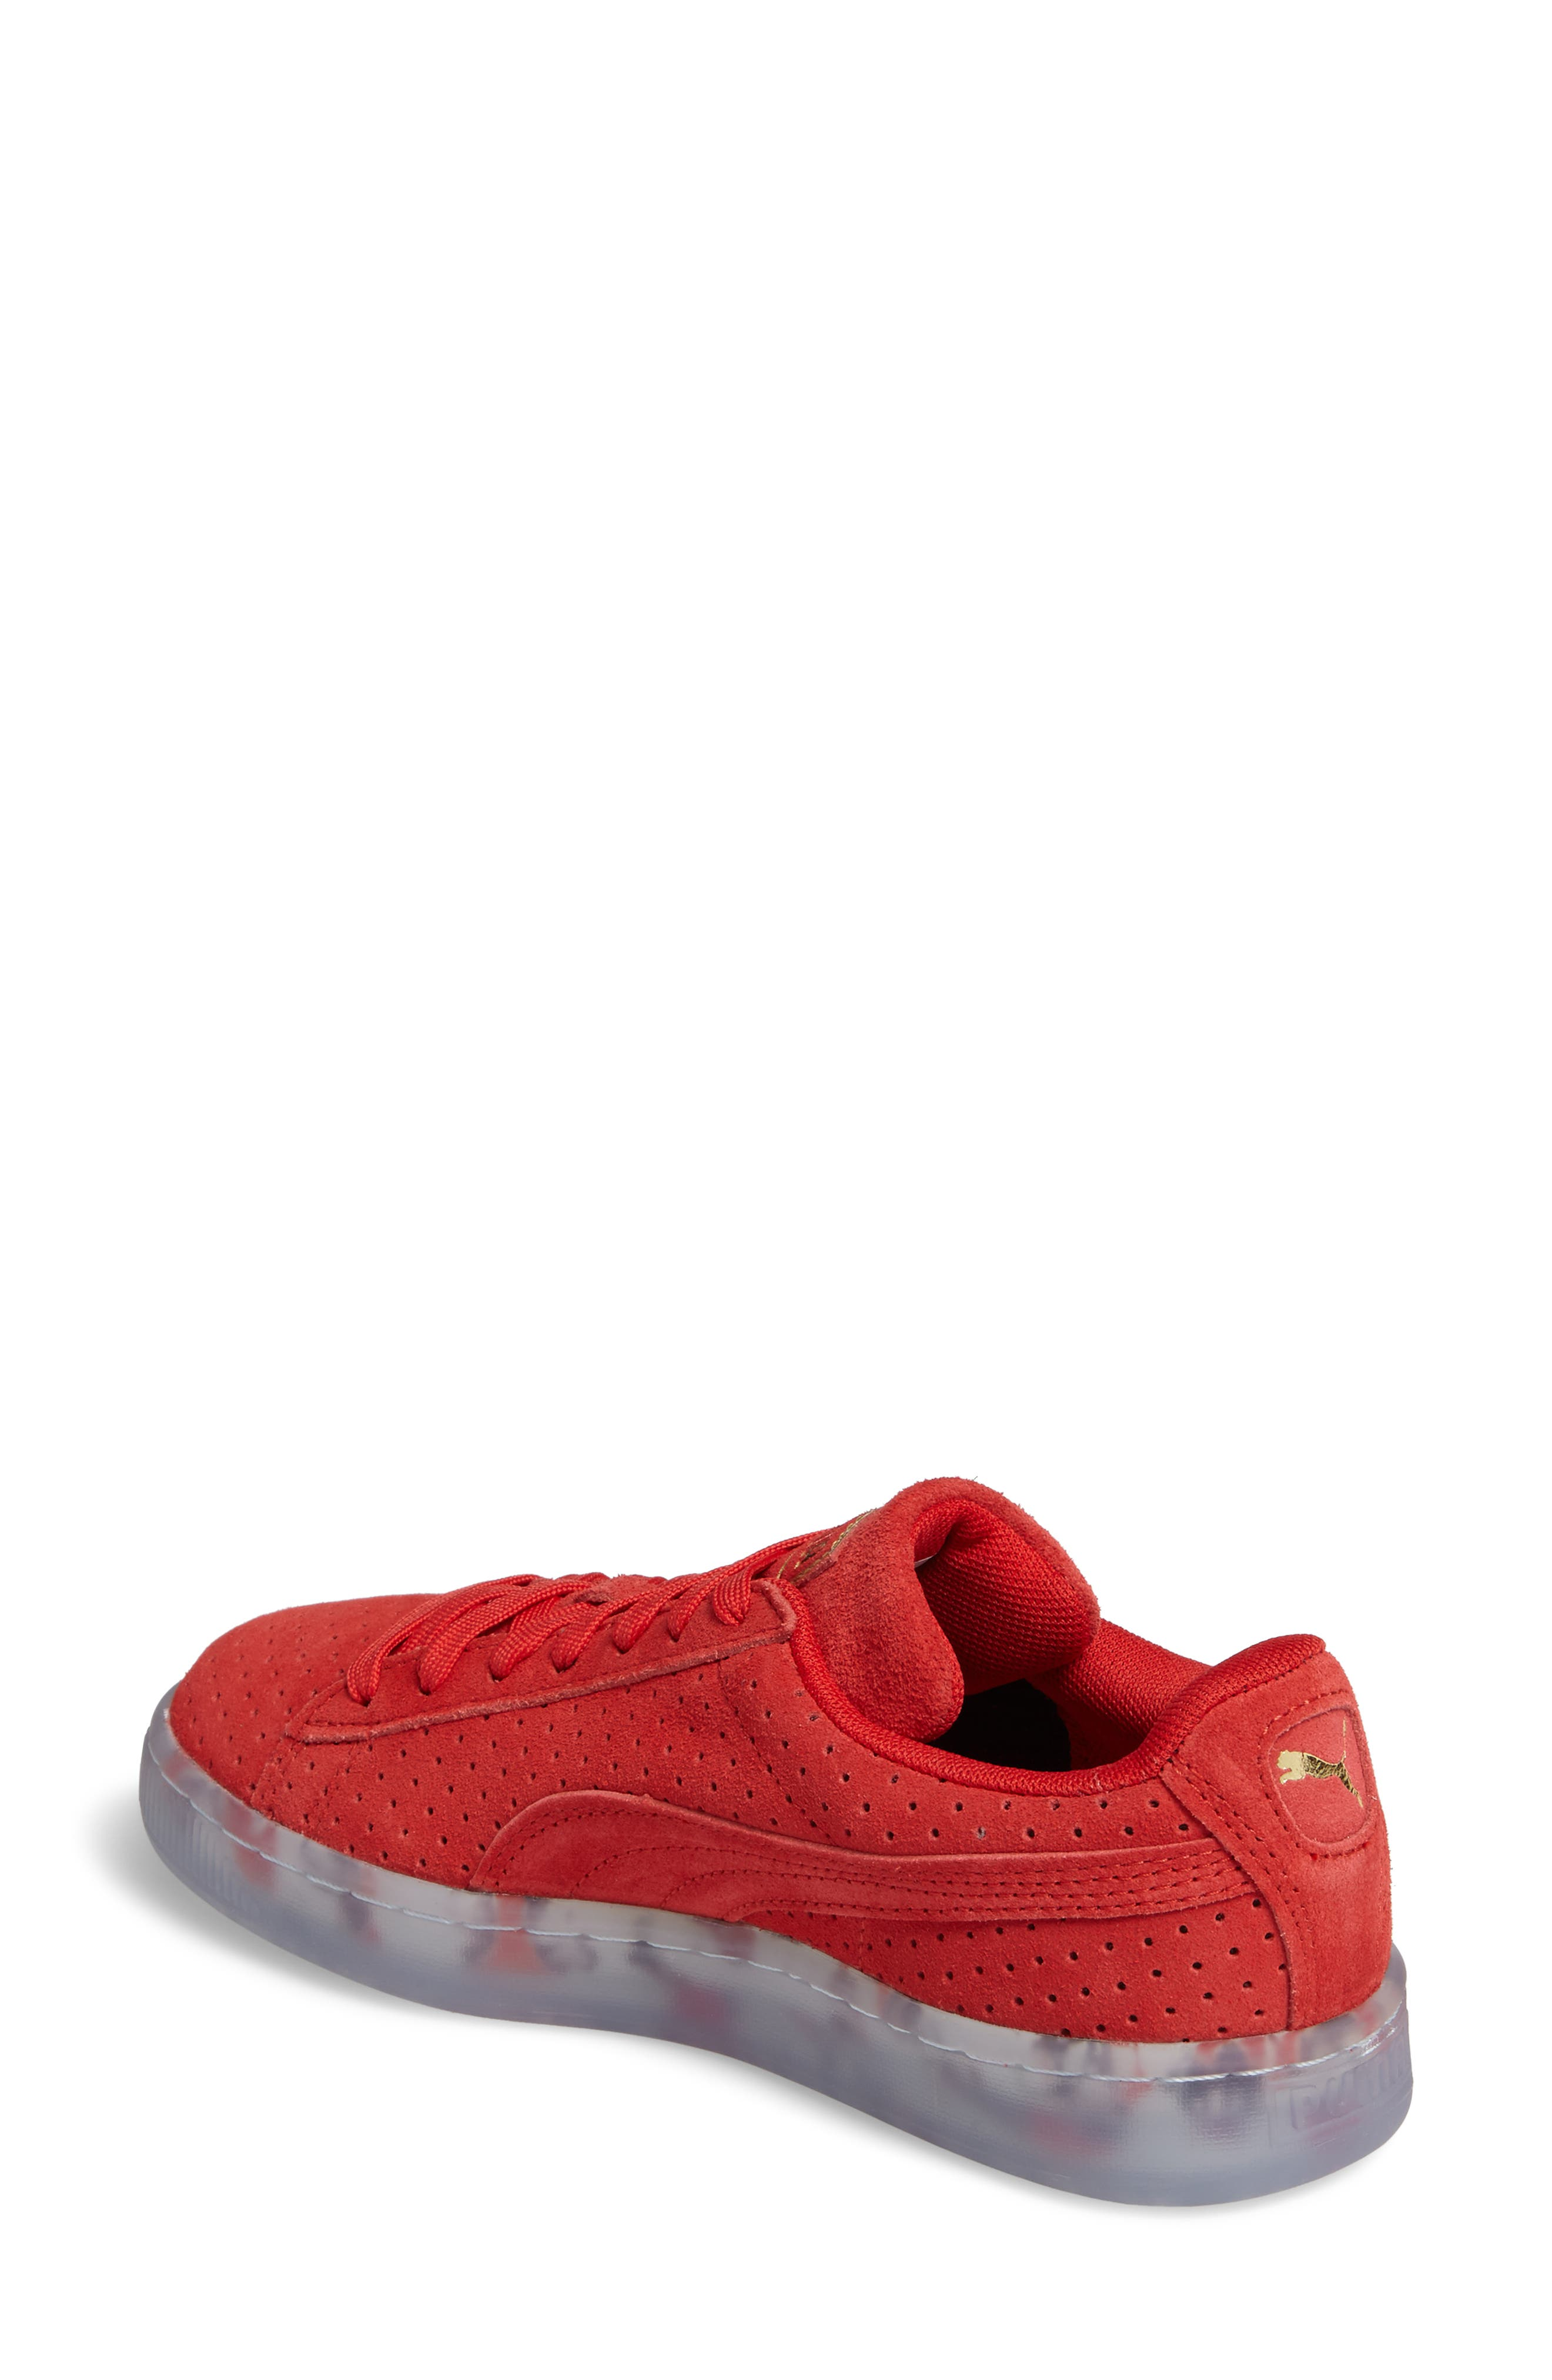 Suede Classic Perforated Sneaker,                             Alternate thumbnail 2, color,                             High Risk Red/ Puma White